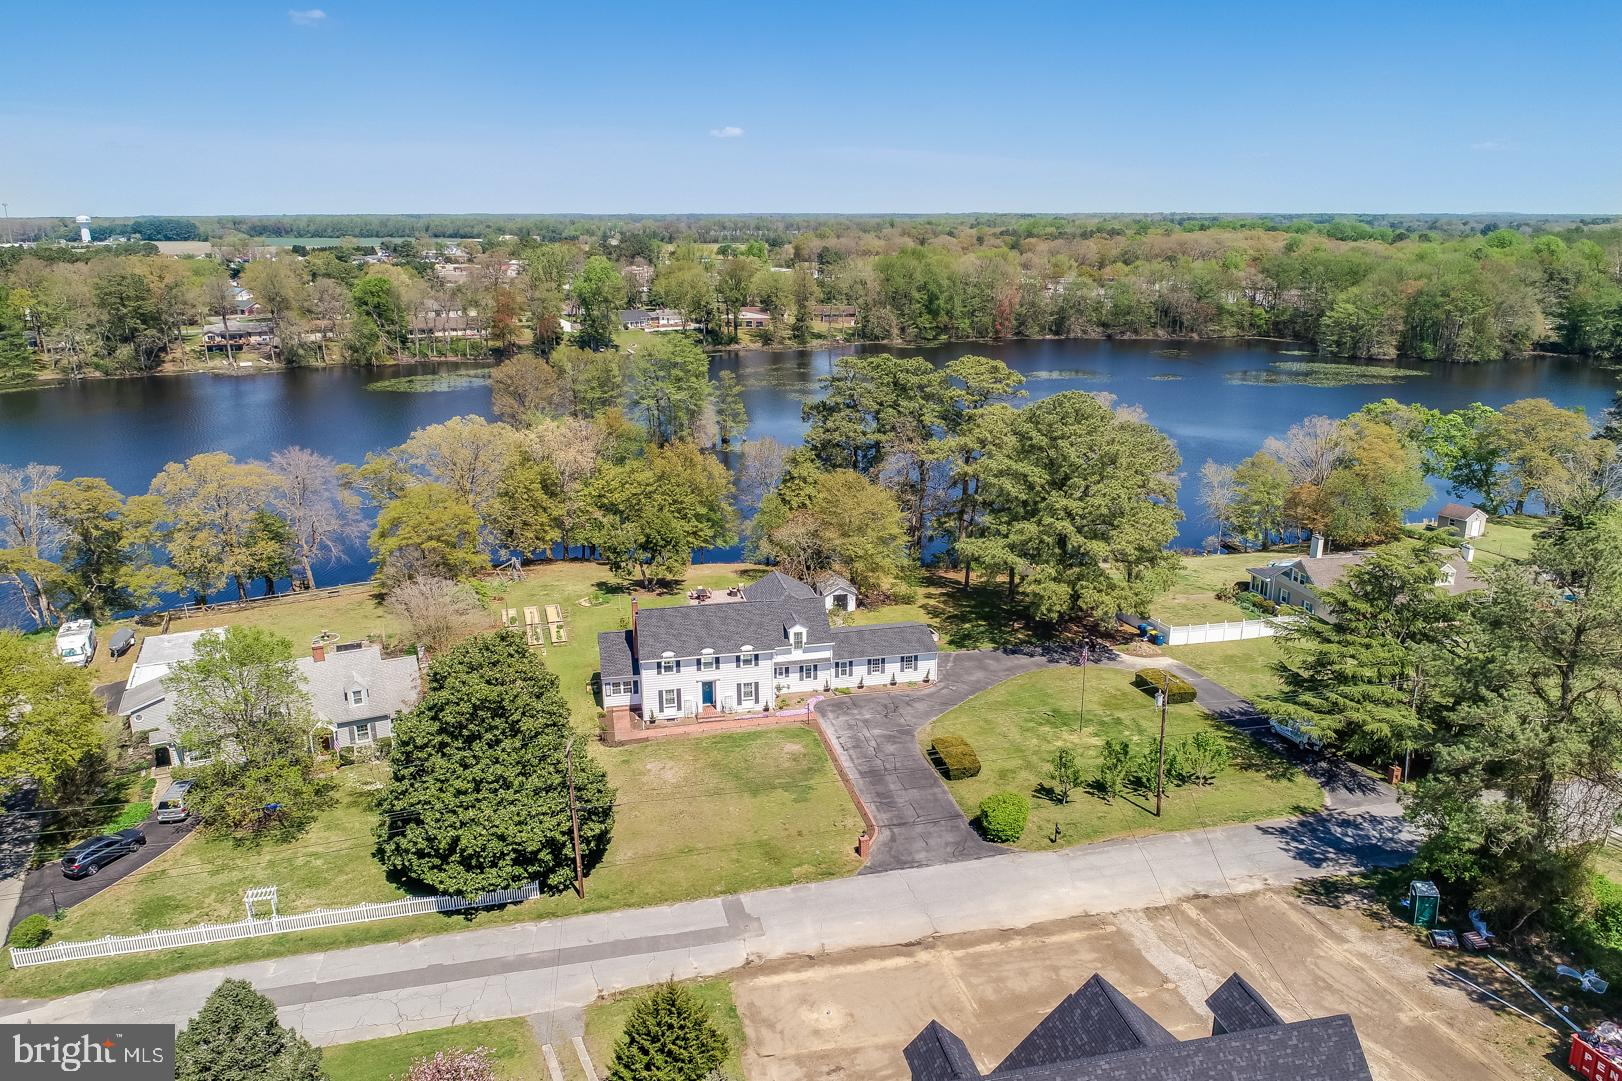 """Start living your Waterfront Dreams with this 1.07 acre property that has approximately 250 feet on Records Pond in the historic Town of Laurel.  This completely remodeled spacious home is the perfect blend of Old and New with the Charm of Old Colonial Style and the Modern Updates of a New Home. Although it was built around 1943, it has been recently rebuilt """"from the studs"""" and completely renovated ... New Custom-Designed Kitchen Cabinets, Quartz Countertops, all New Drywall throughout, Electric Upgraded to 200 amp, New Plumbing throughout, HVAC has 2-Zone Service (at 1st & 2nd Floors), High Efficiency Windows with Transferrable Lifetime Warranty, New Roof in 2019. Plus Hardwood, Ceramic Tile & Brick Floors throughout. Ask your Real Estate Agent to print out the full listing of Improvements/Custom Features. The Great Room in back provides magnificent views of the Backyard, Gardens and Pond. Relax in the 2nd floor Master Suite's Soaking Tub overlooking """"Laurel Lake"""".  Fisherman's Delight!  Fish in your own backyard in stocked Record's Pond! Don't risk losing this once in a lifetime opportunity! Schedule your Private Tour Today!"""